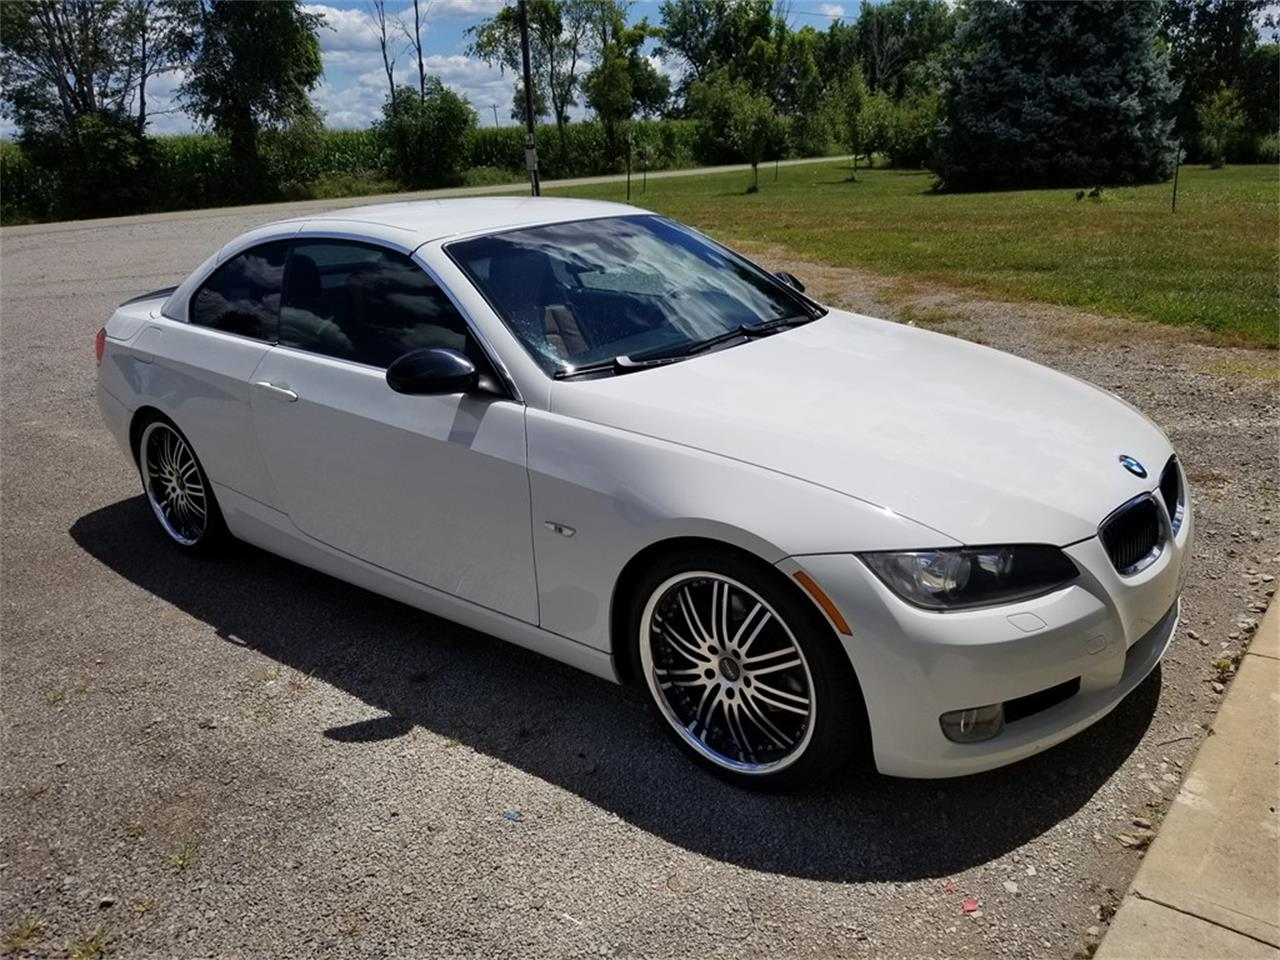 bmw 328i 2007 cabriolet auburn classic financing inspection insurance transport indiana rm sotheby